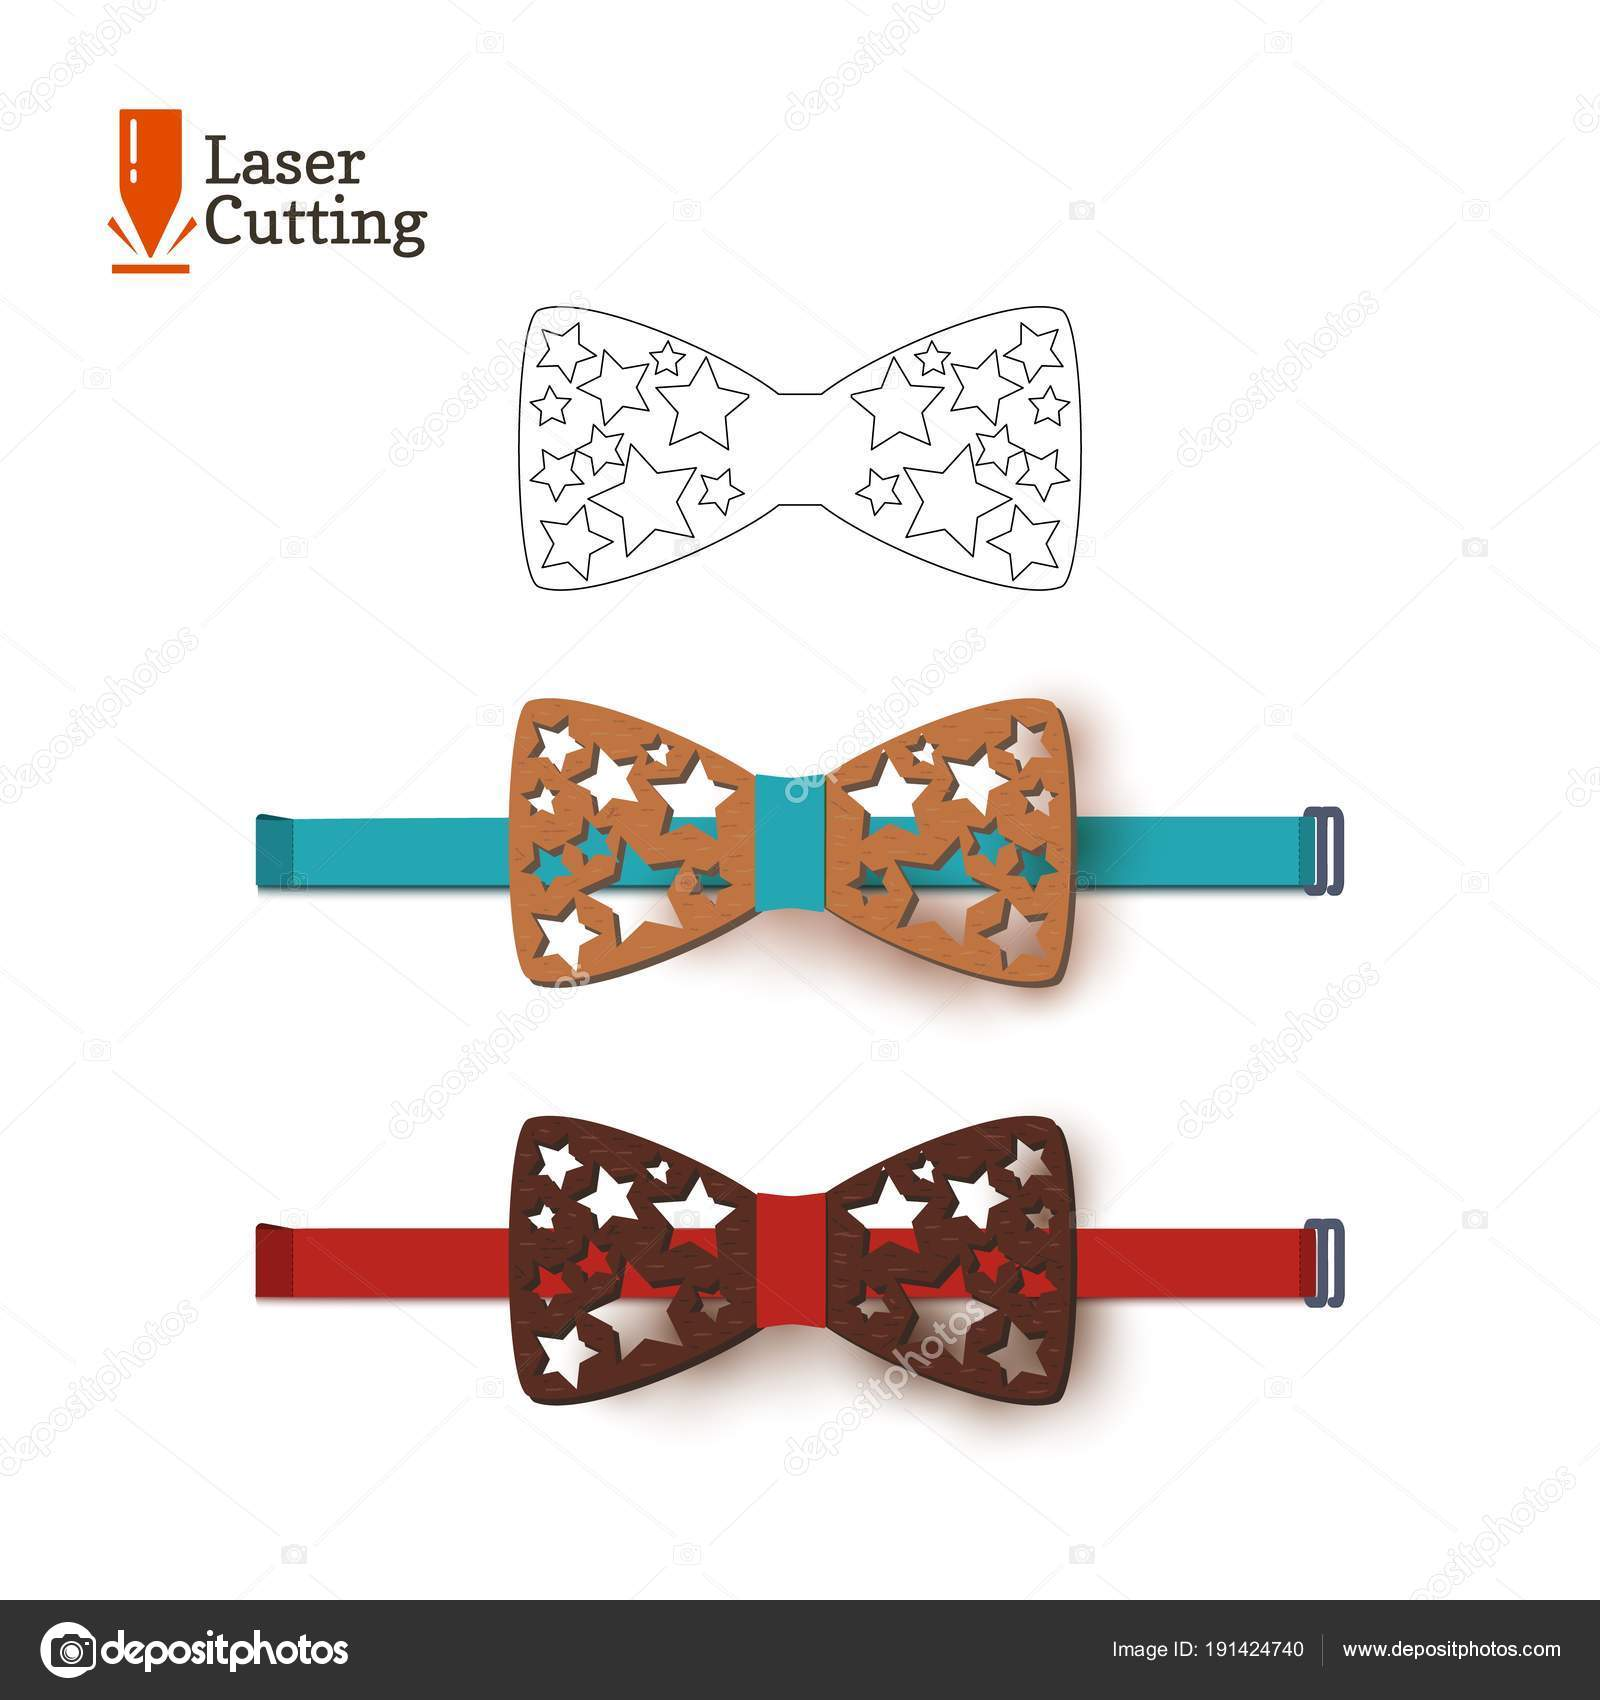 laser cut bow tie template vector silhouette for cutting a bow tie